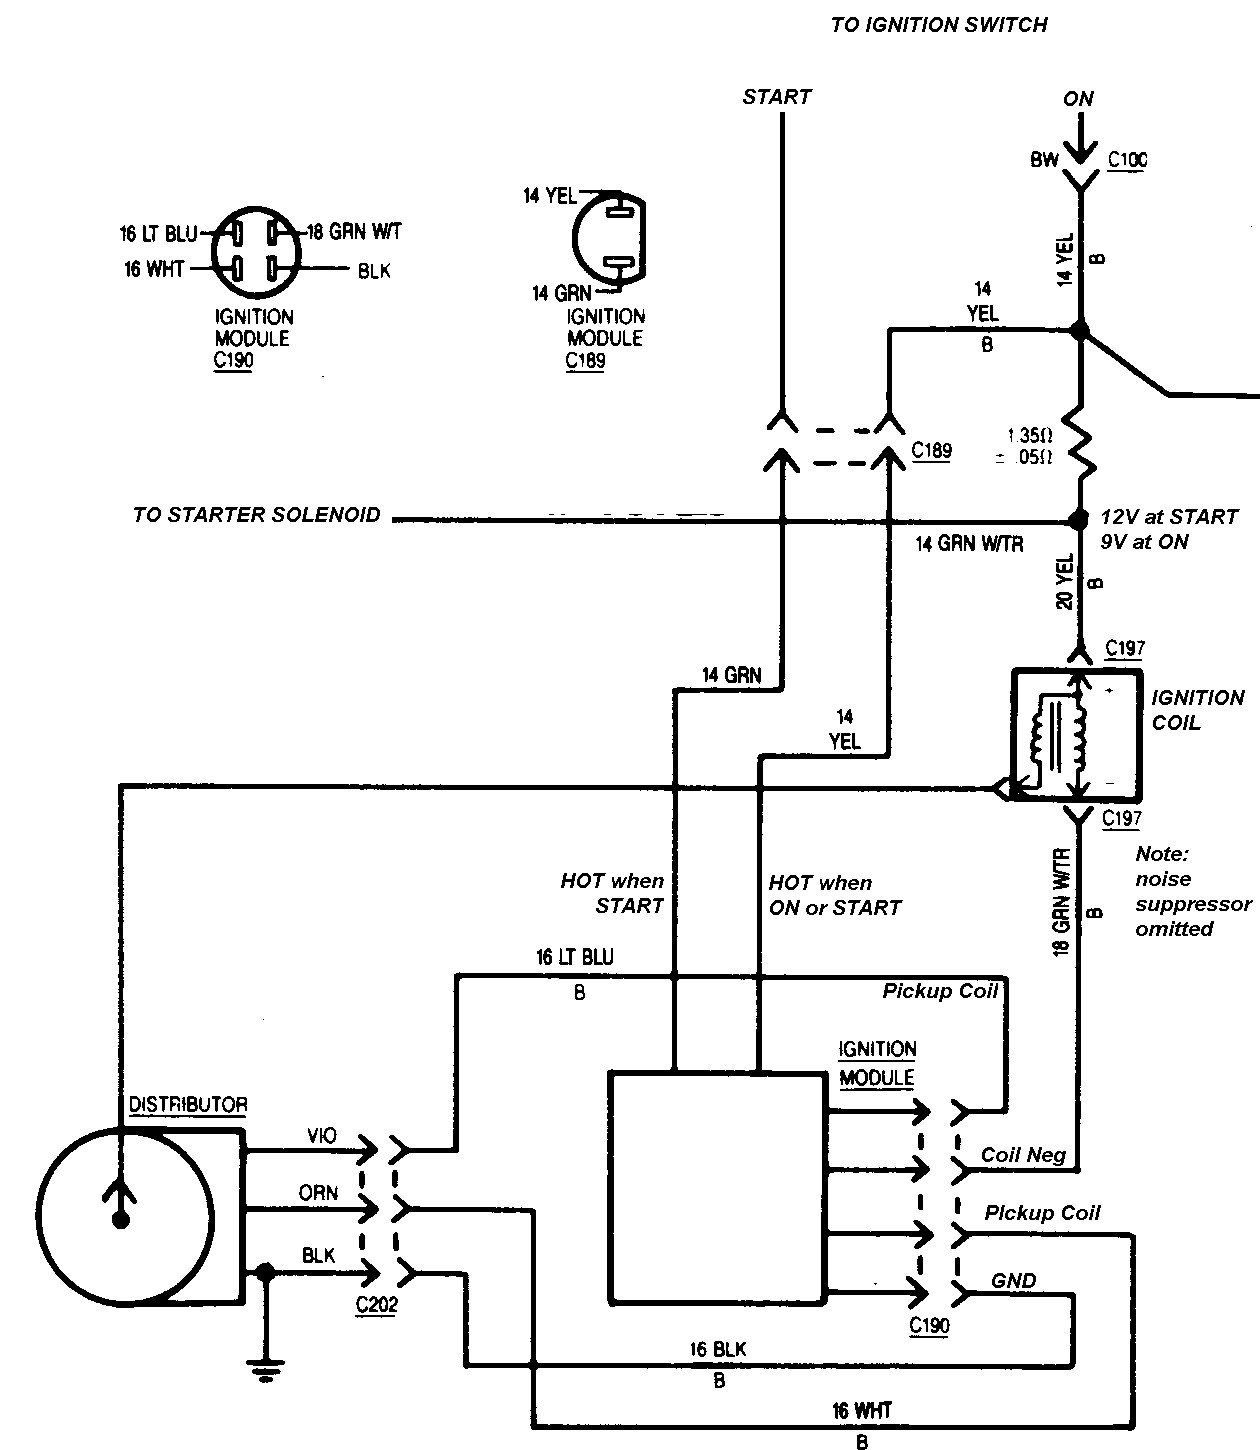 hight resolution of 1990 ford f 150 ignition module wiring diagram